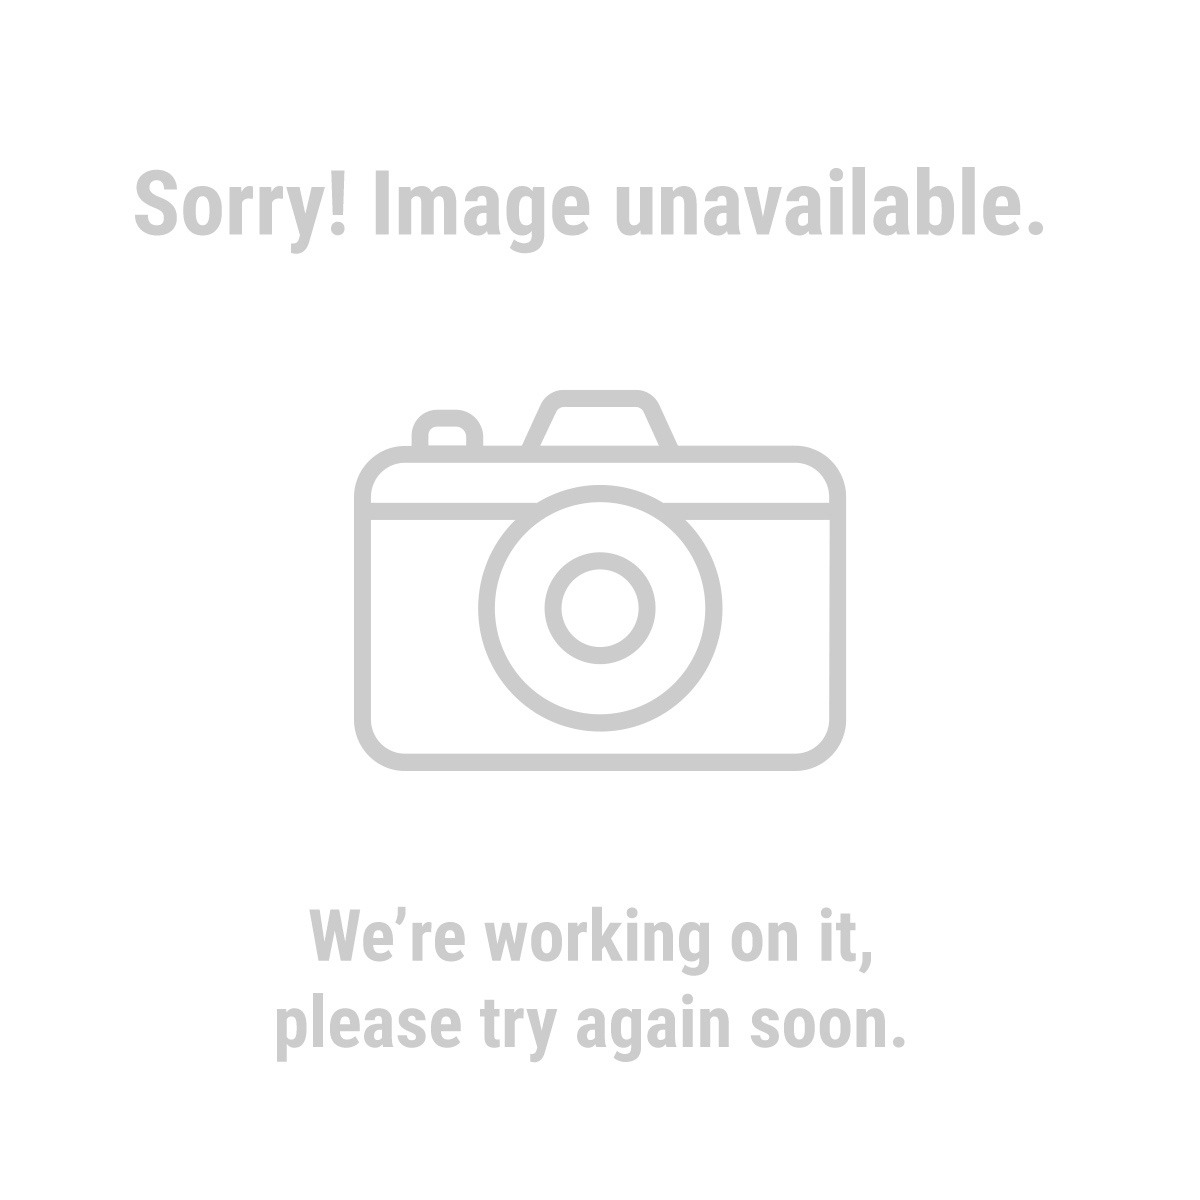 HFT 69567 27 LED Portable Worklight/Flashlight